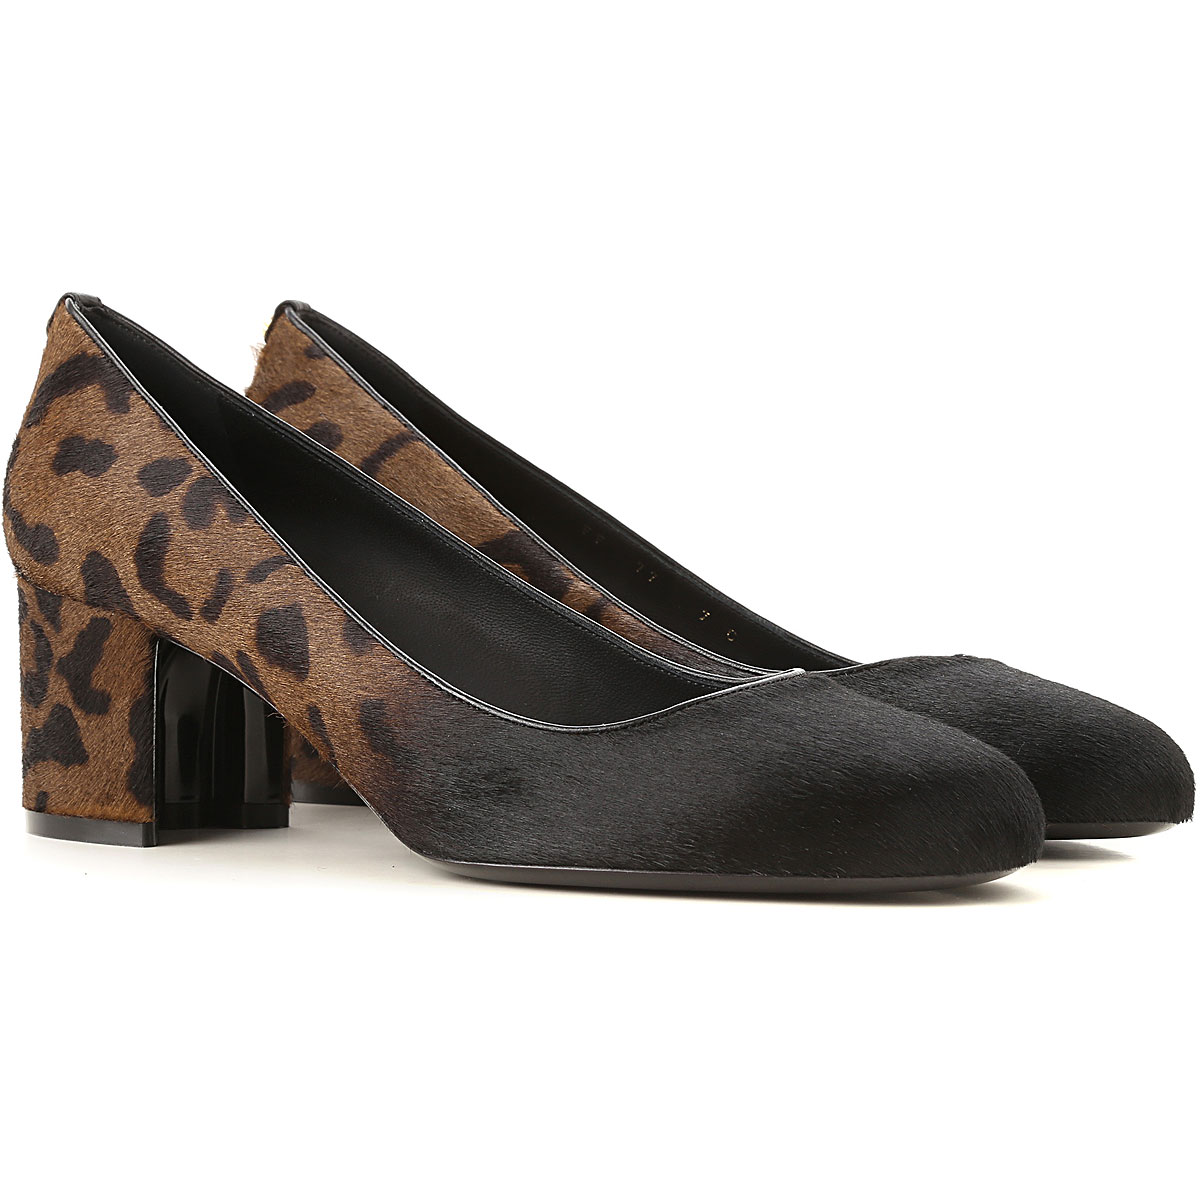 Salvatore Ferragamo Pumps & High Heels for Women On Sale in Outlet, Black, Leather, 2019, 5.5 6 7 9.5